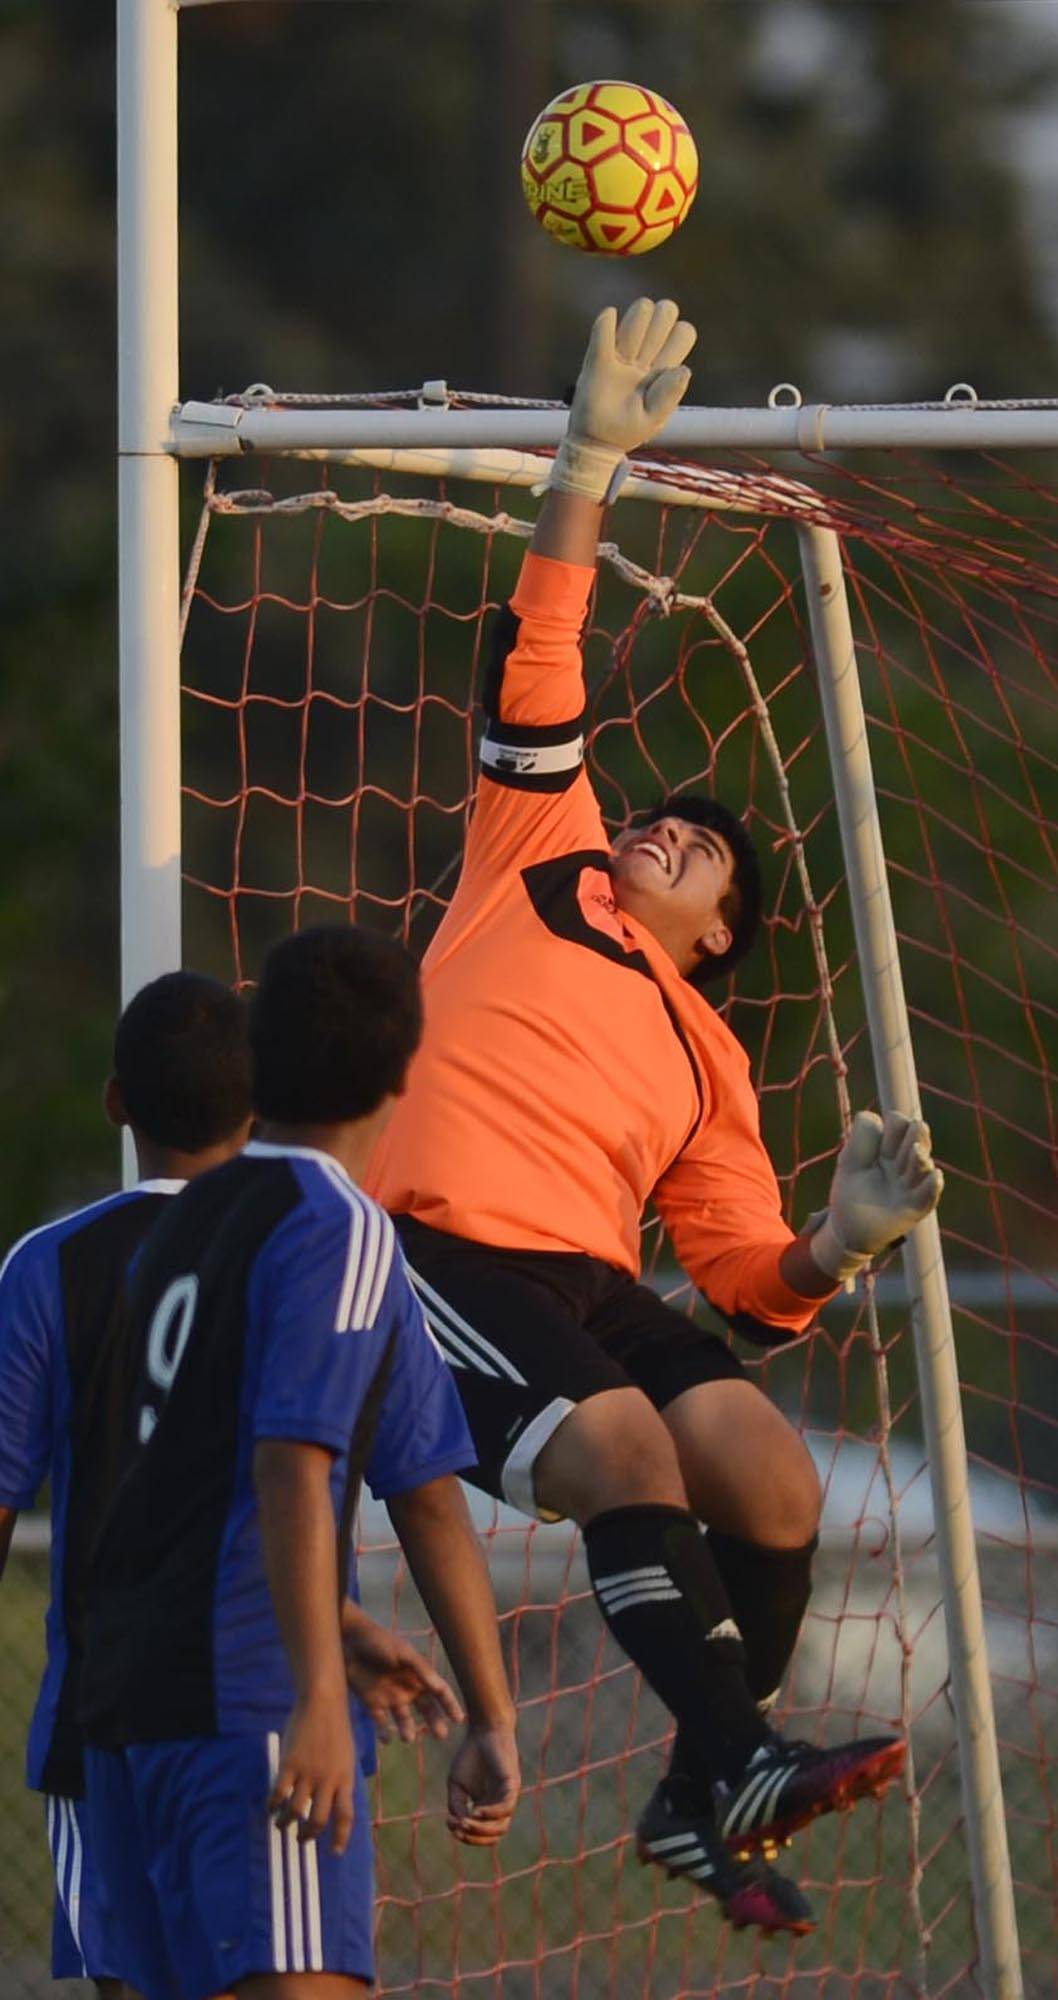 Batavia's Larkin goalkeeper Leo Perez makes a save on a corner kick Thursday in Batavia.